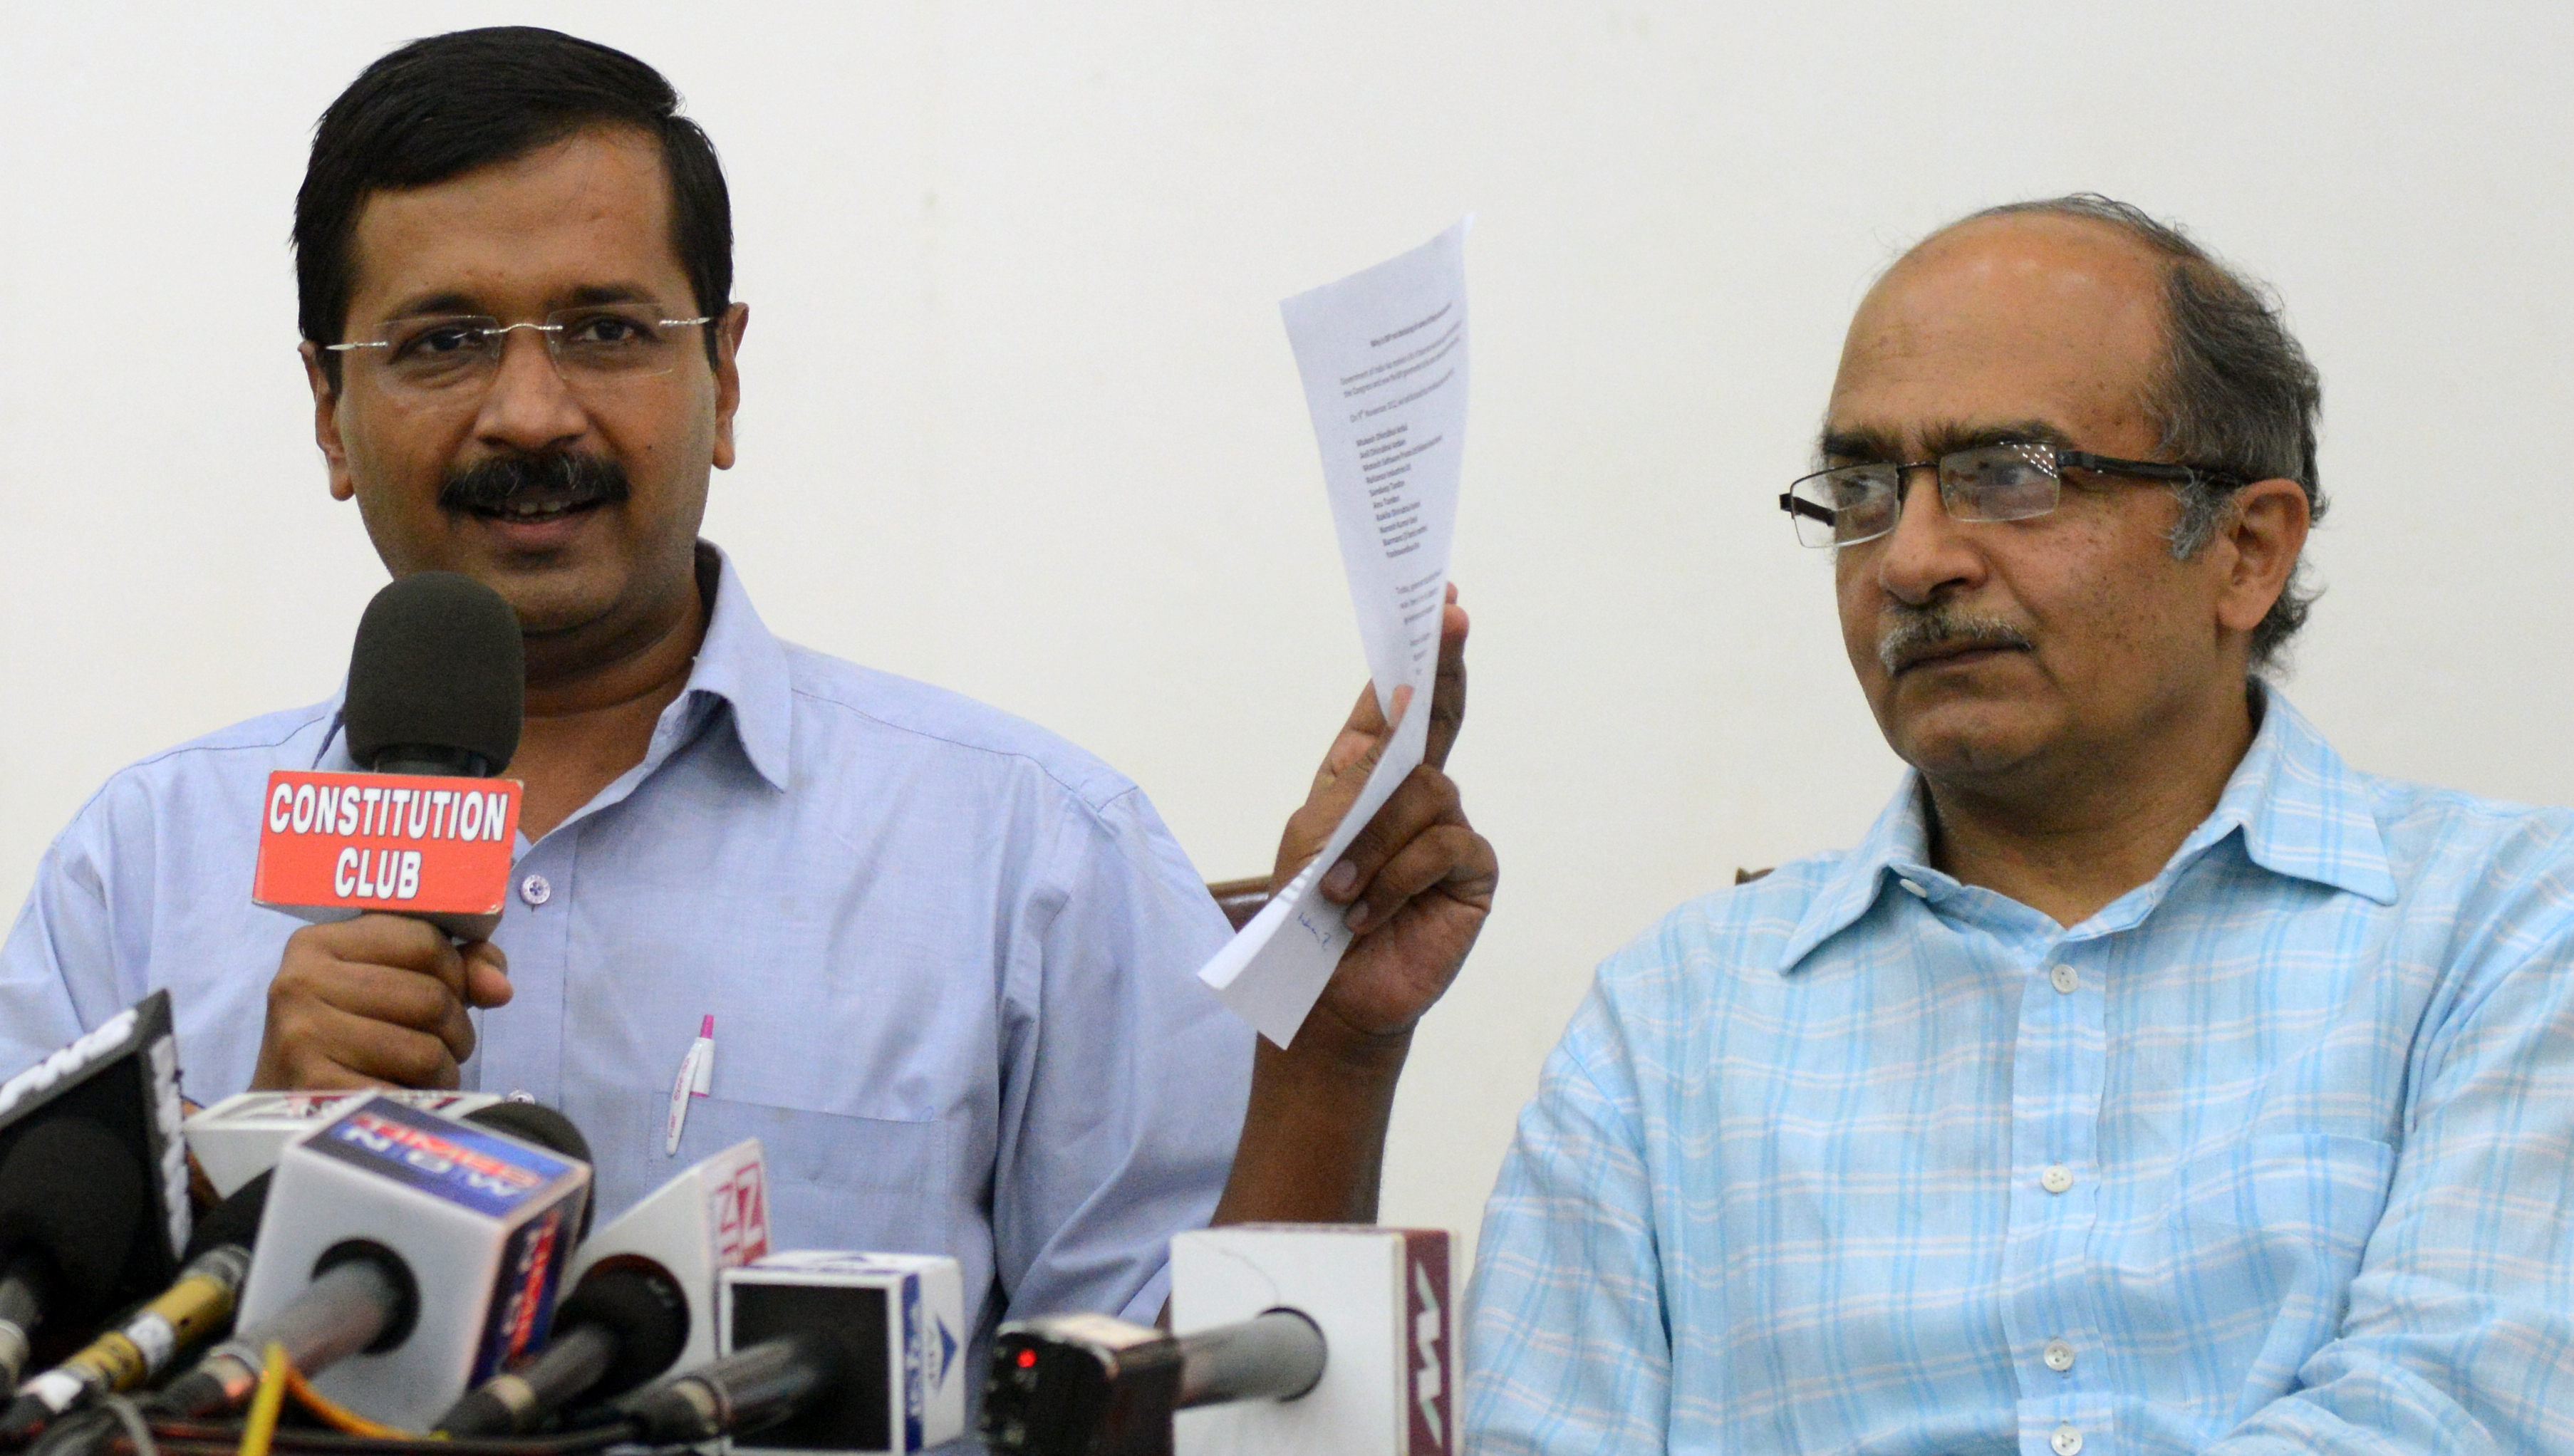 Aam Aadmi Party convener Arvind Kejriwal and Prashant Bhushan addressing the media in New Delhi